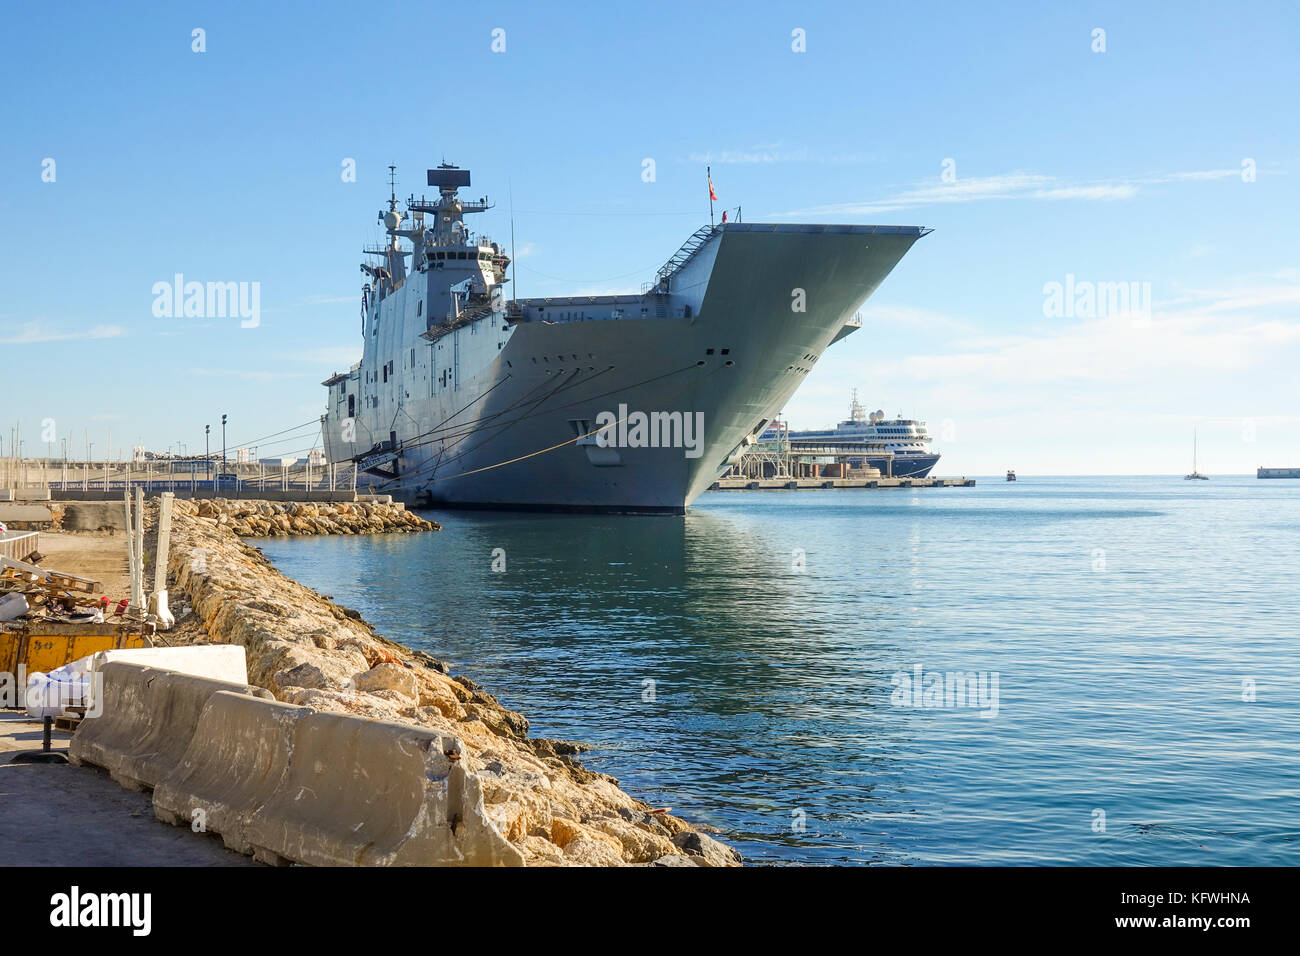 Aircraft carrier, Spanish ship Juan Carlos I moored in the port of Malaga, Andalusia, Spain. Stock Photo